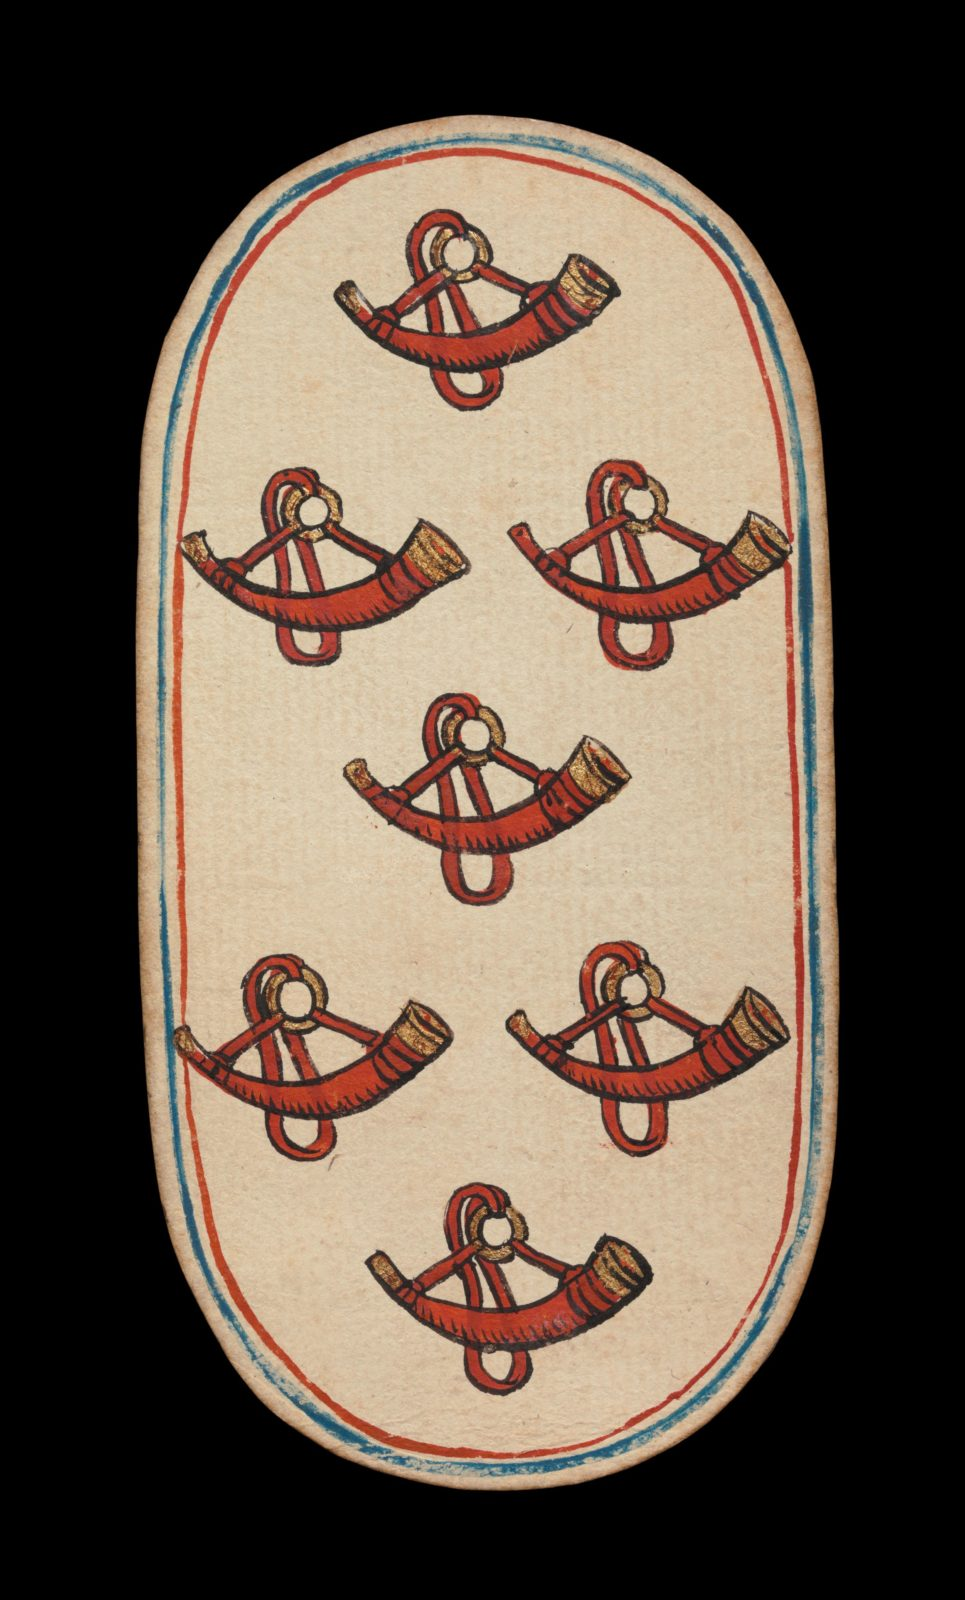 7 of Horns, from The Cloisters Playing Cards